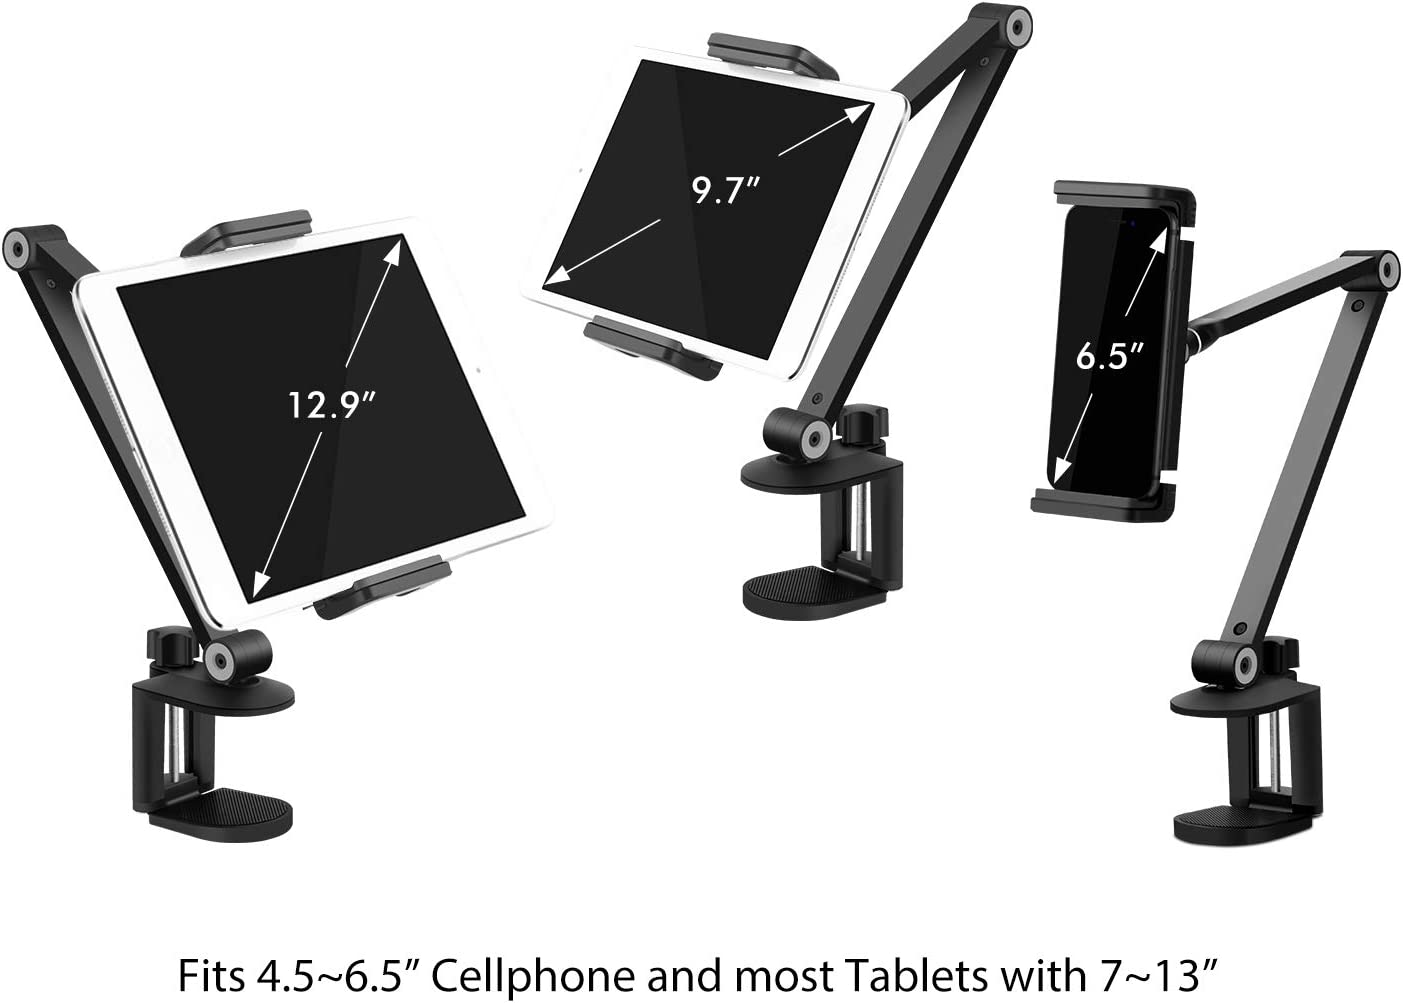 Rotate 360 Degrees of Flexible High-Grade Aluminium Alloy Long Arm Compatible with 4-13 Mobile Phone and Tablet Viozon Tablet Stand Holder Mount iPad Height and Angle Adjustable iPhone White